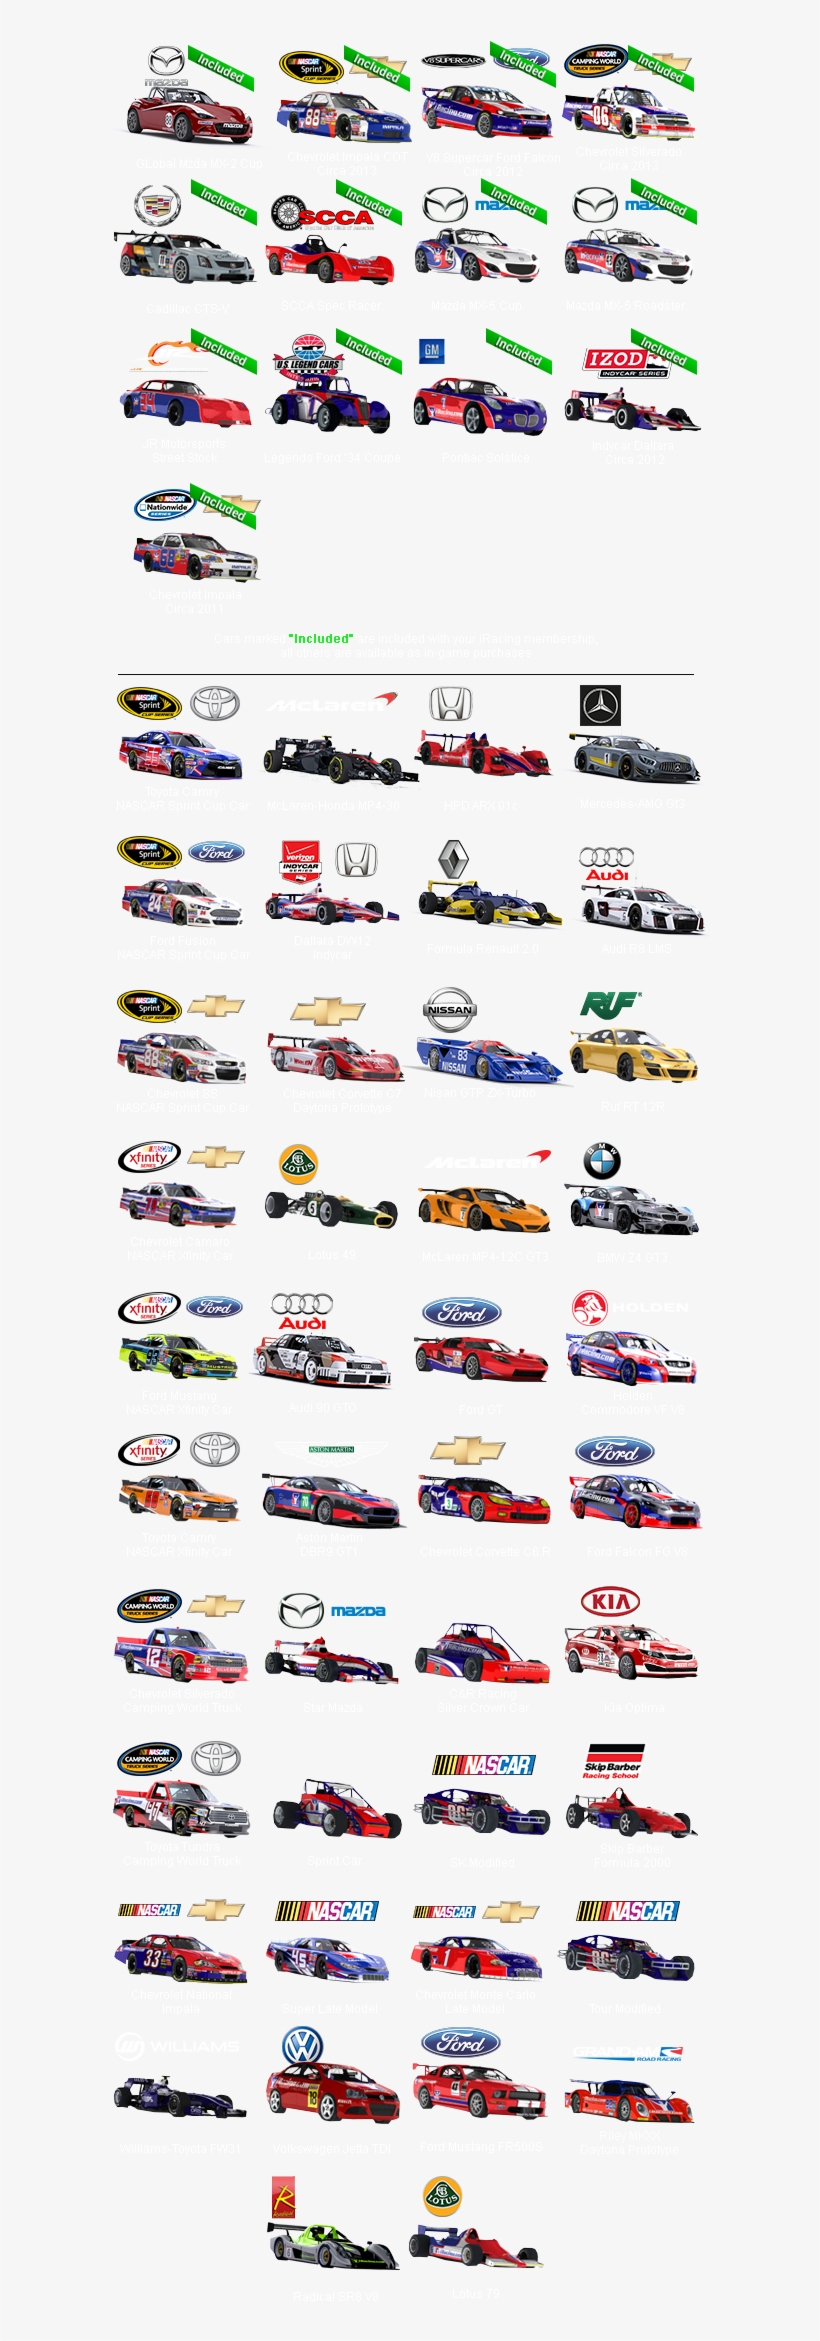 More Information On All Of Our Cars Is Available Here - Iracing Car List, transparent png #6427916